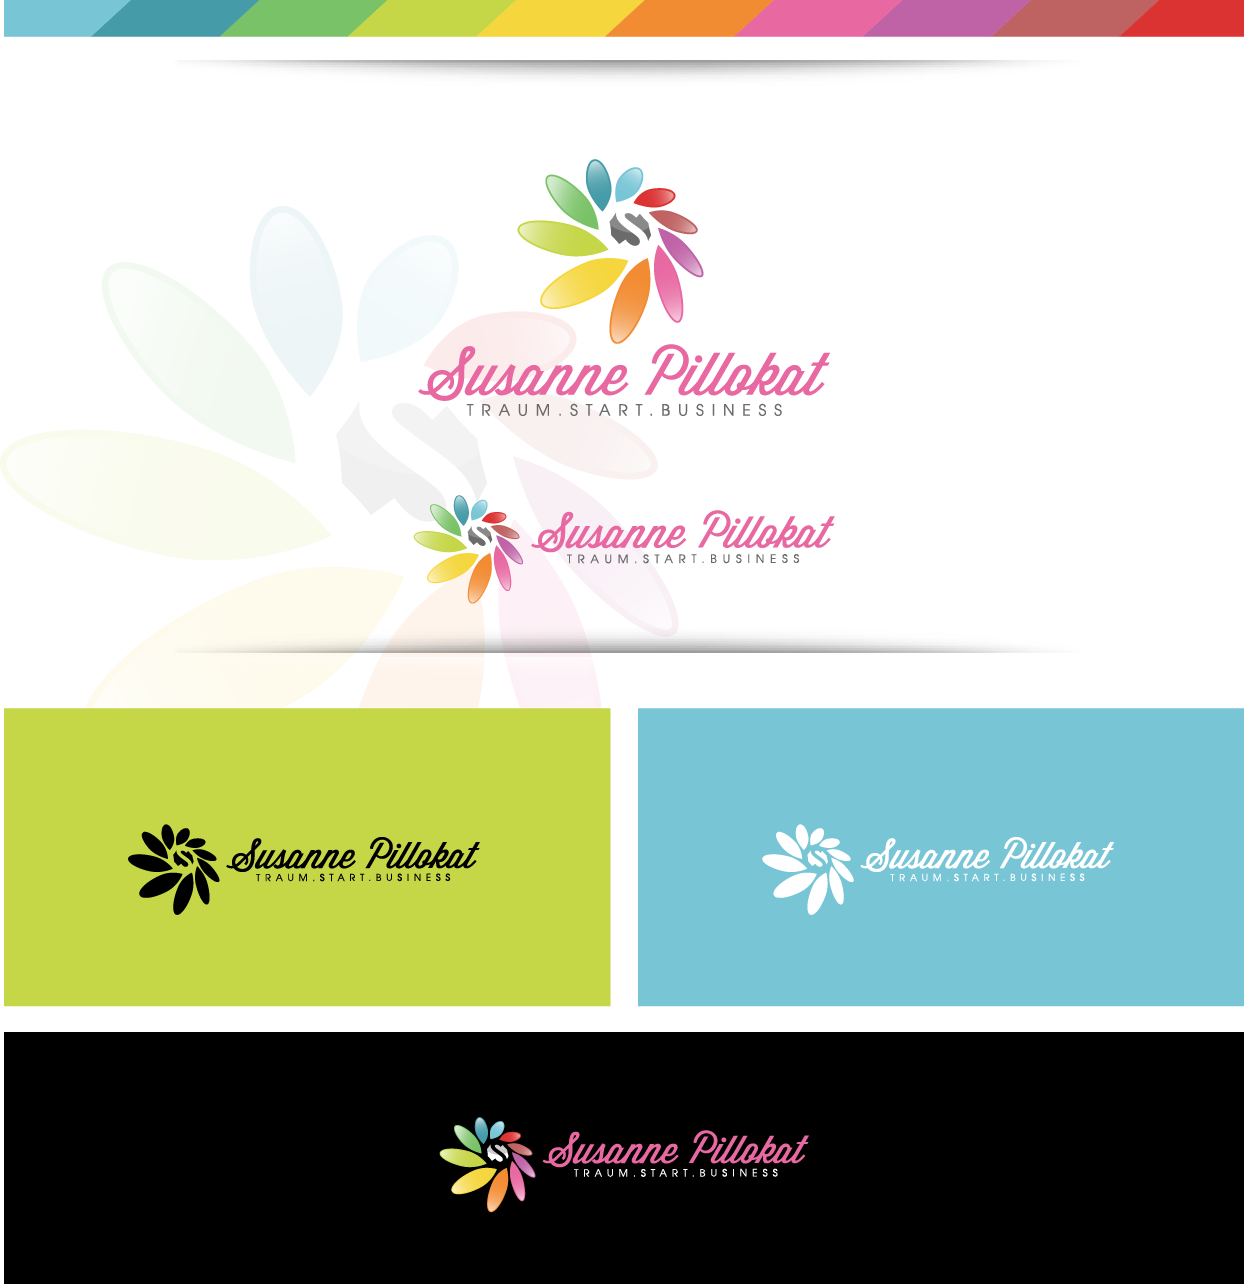 Smashing logo that inspires women to turn their dreams & passion into a business & life they love